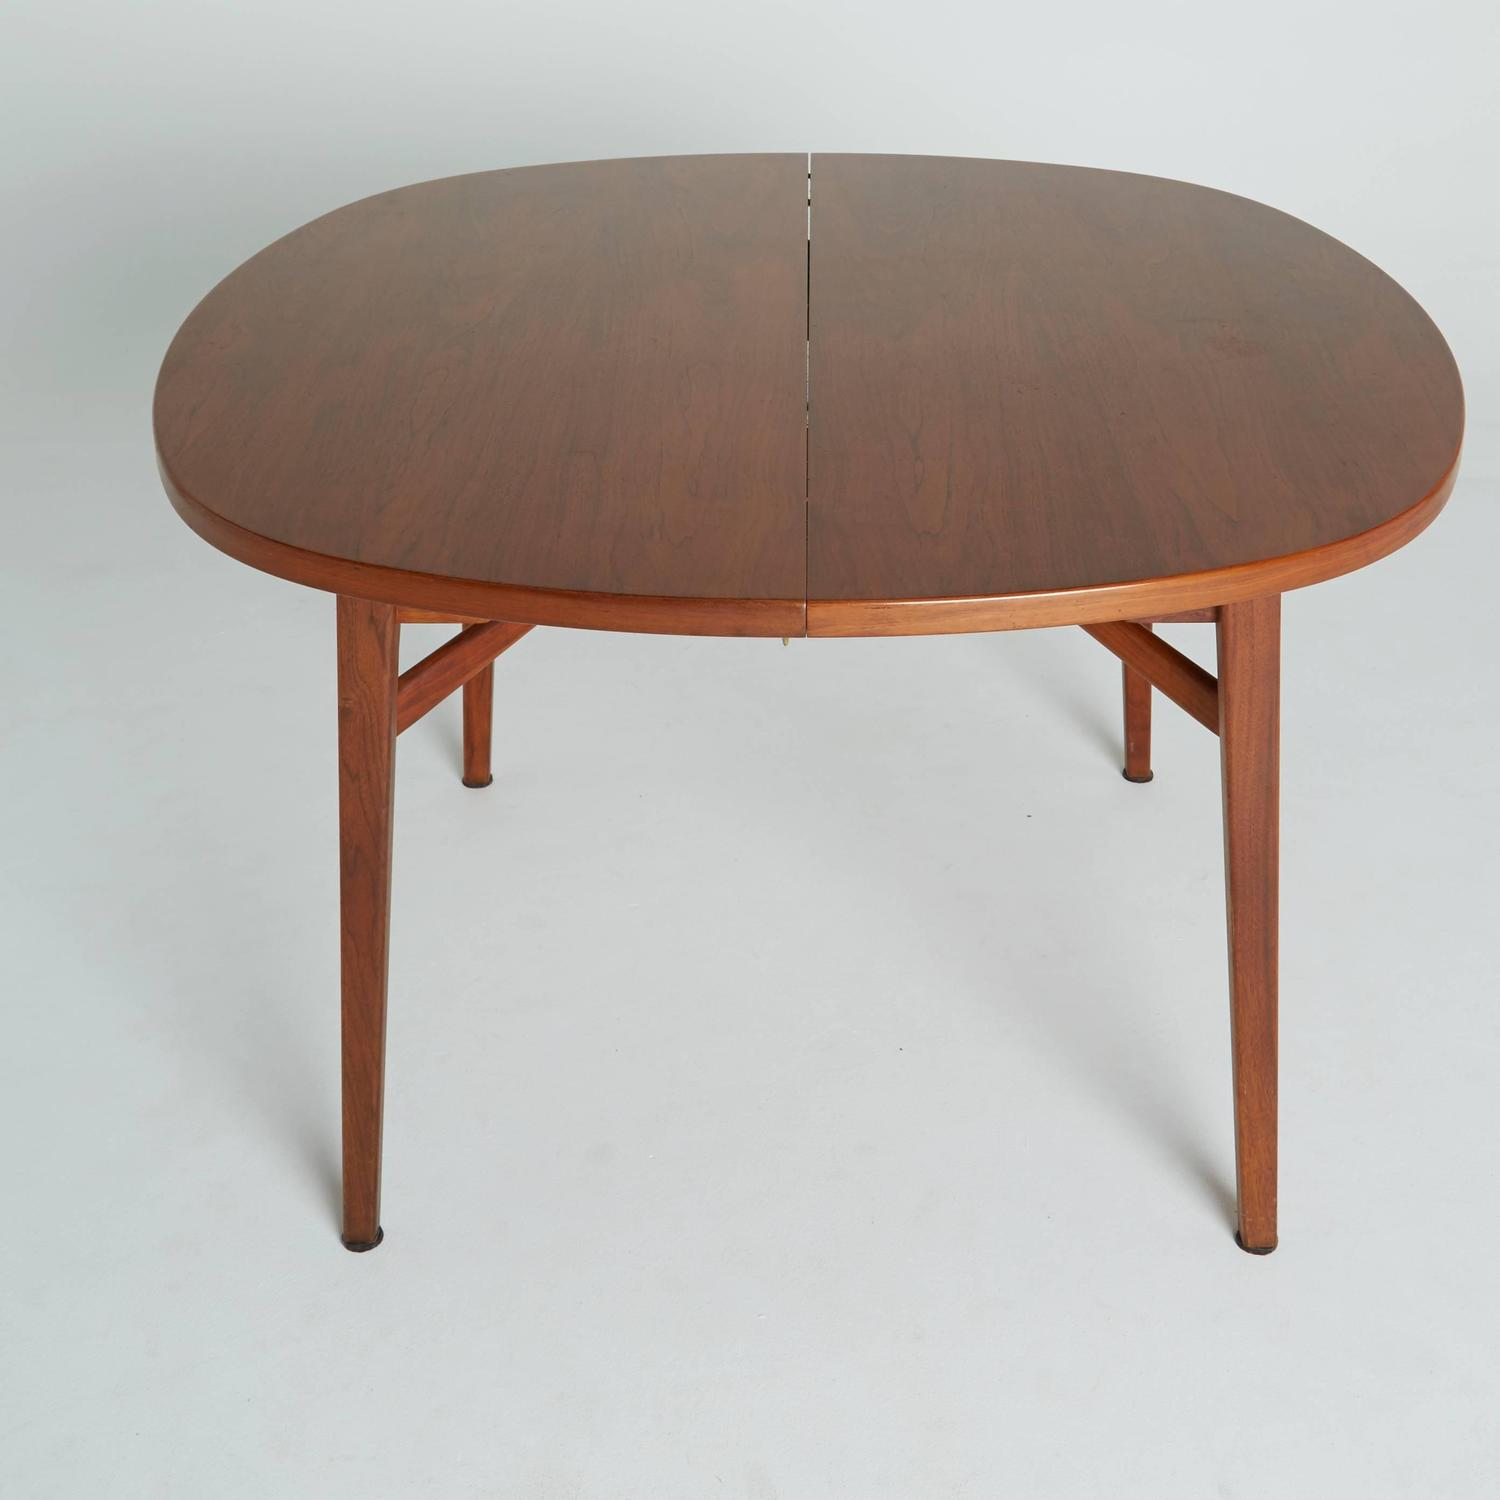 jens risom teak expandable dining table for sale at 1stdibs. Black Bedroom Furniture Sets. Home Design Ideas